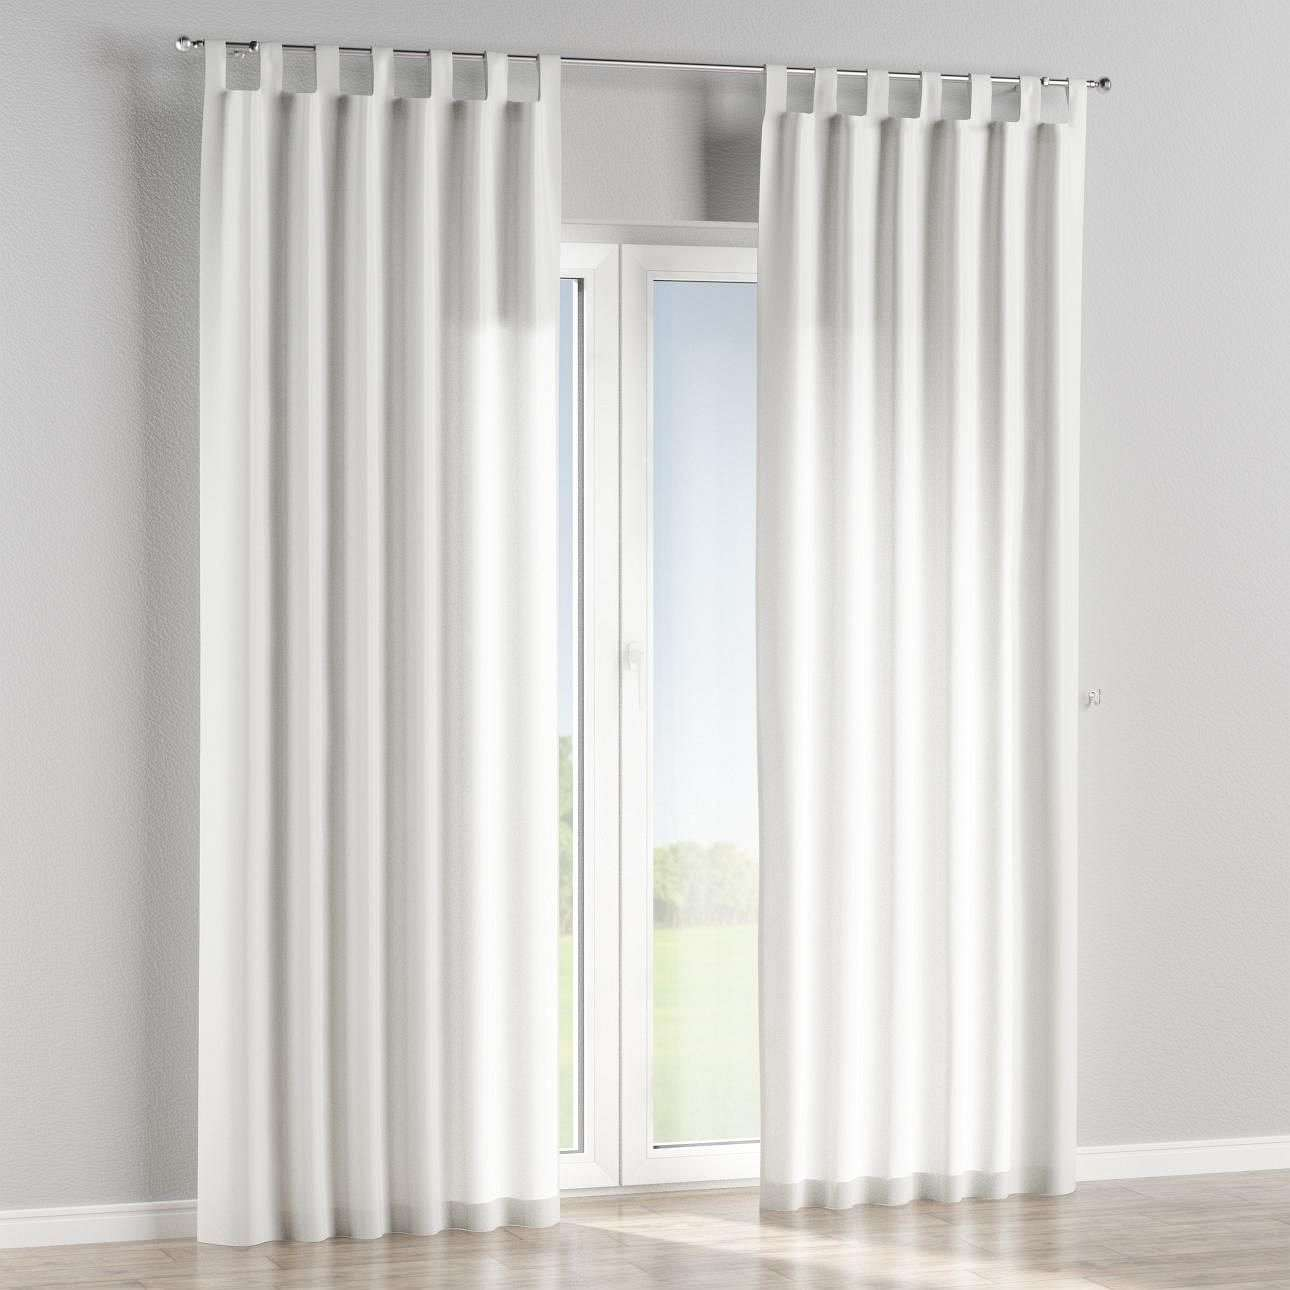 Tab top lined curtains in collection Kids/Baby, fabric: 119-29